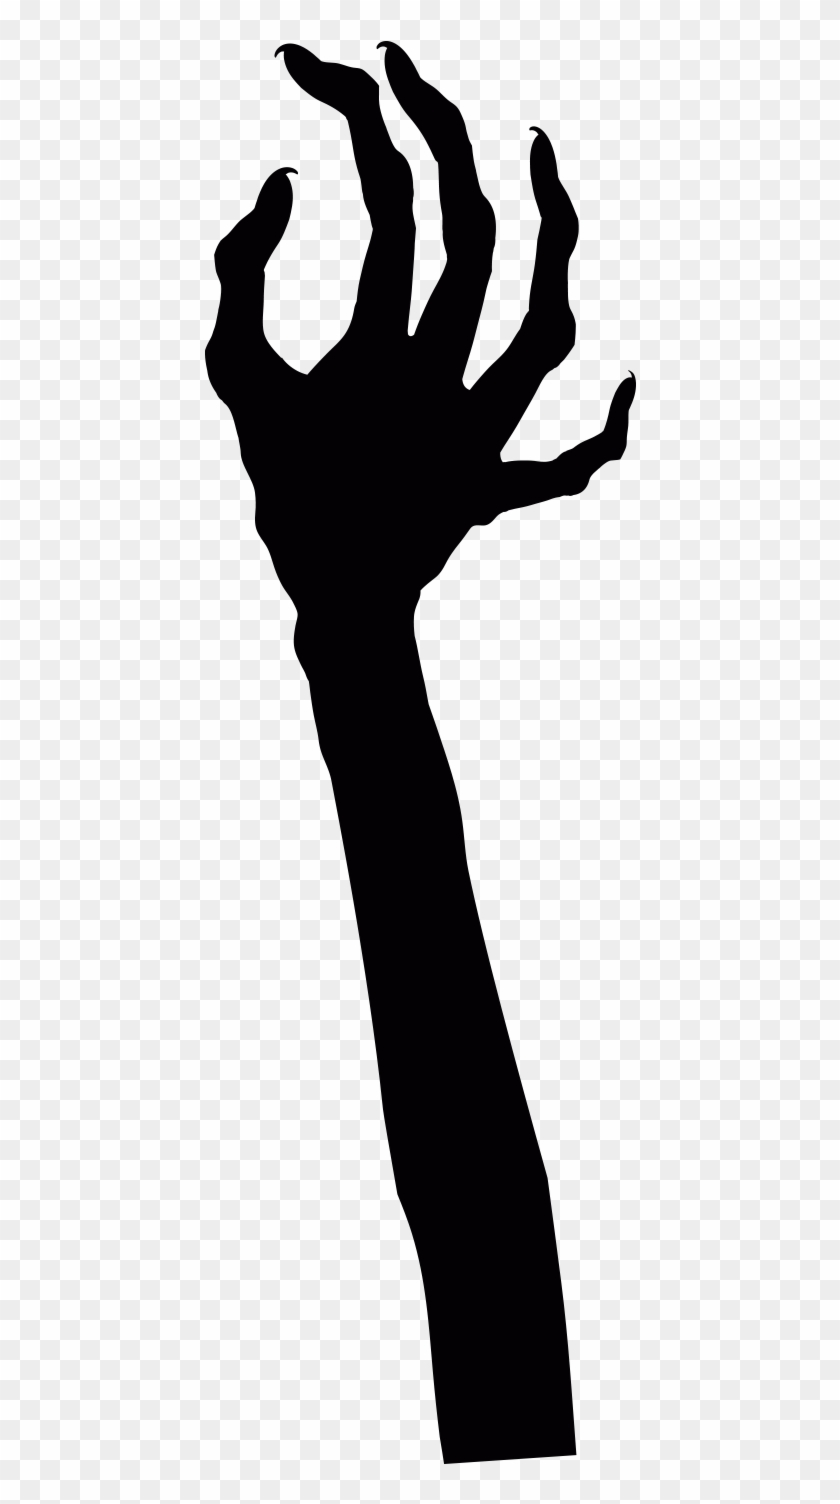 Devil claw png free. Clipart ghost hand